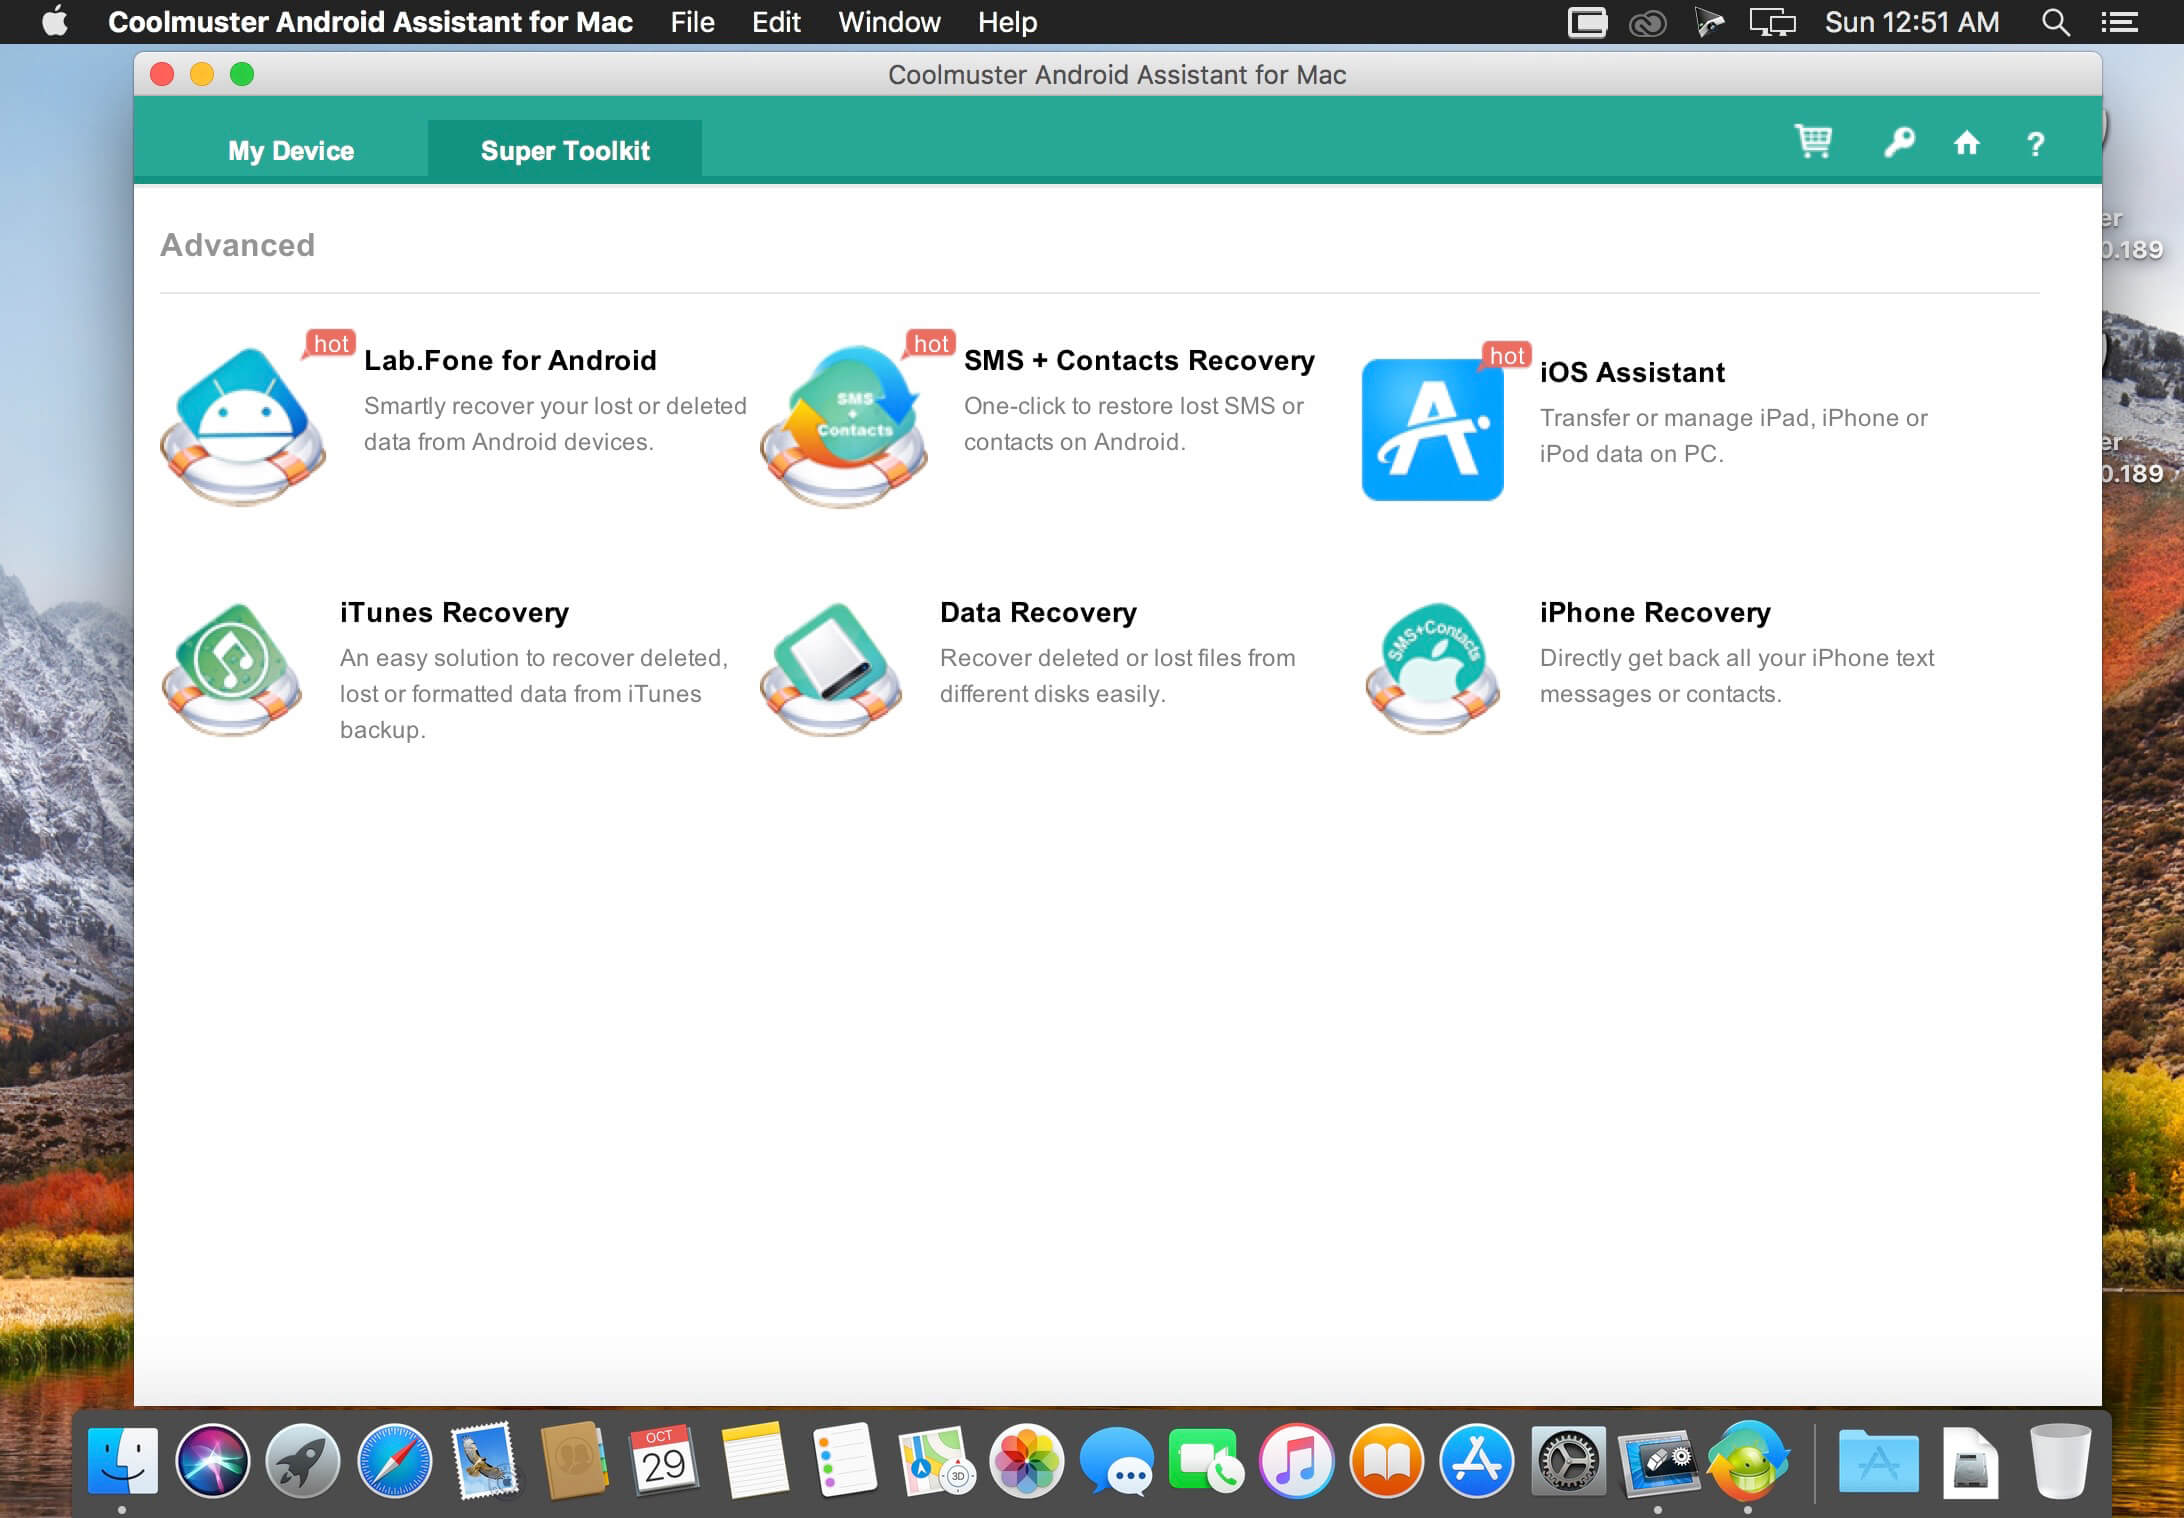 Cool muster android assistant 3.0.189 free download for mac